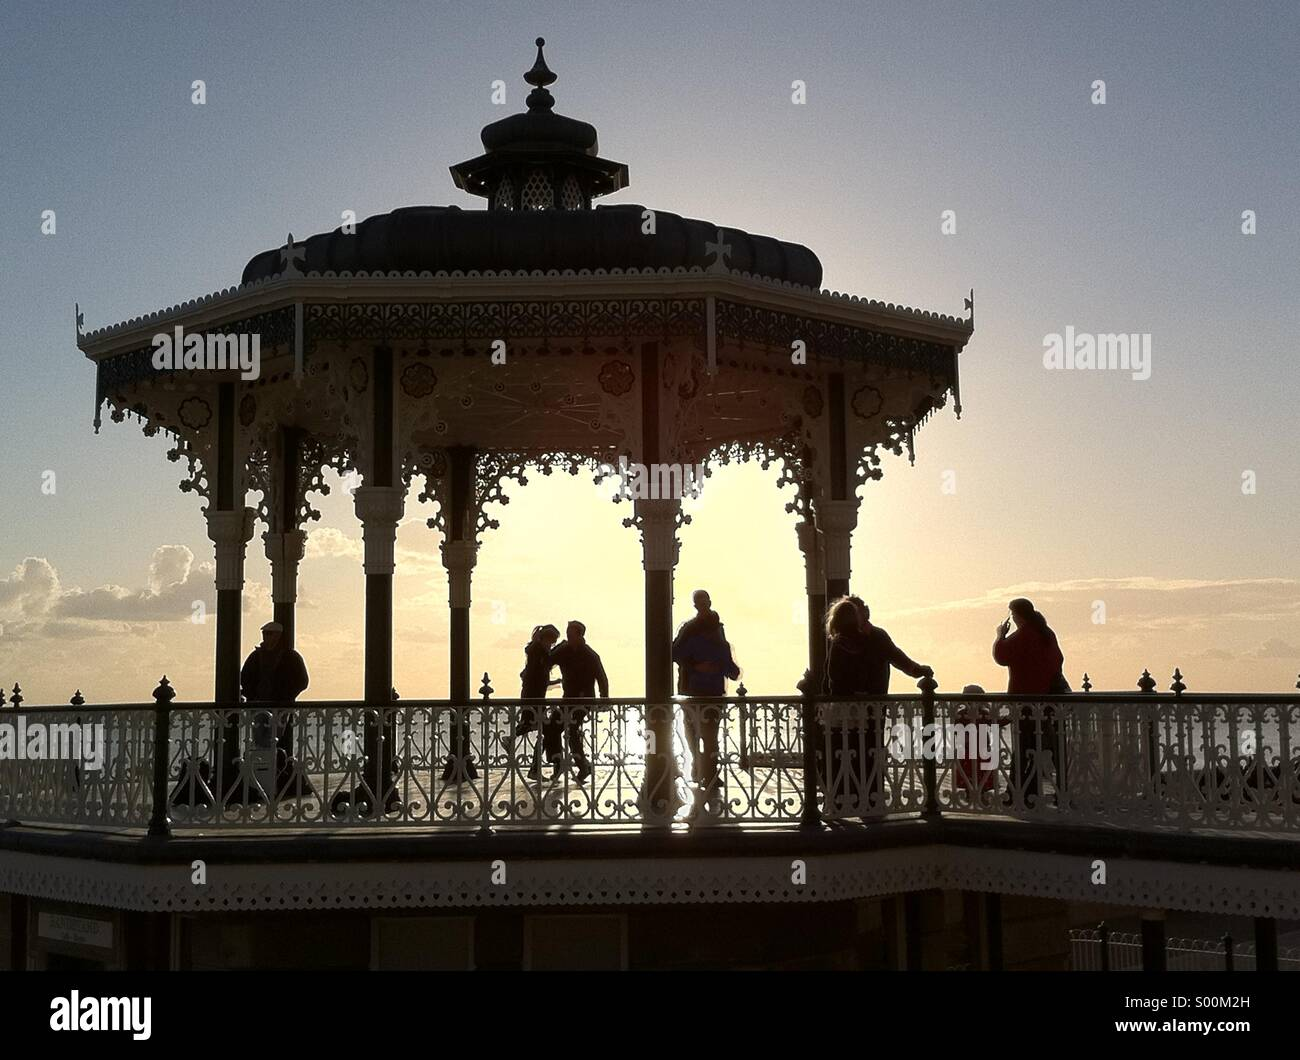 Silhouetted shapes of people dancing on Brighton's seafront bandstand at sunset, East Sussex, England - Stock Image